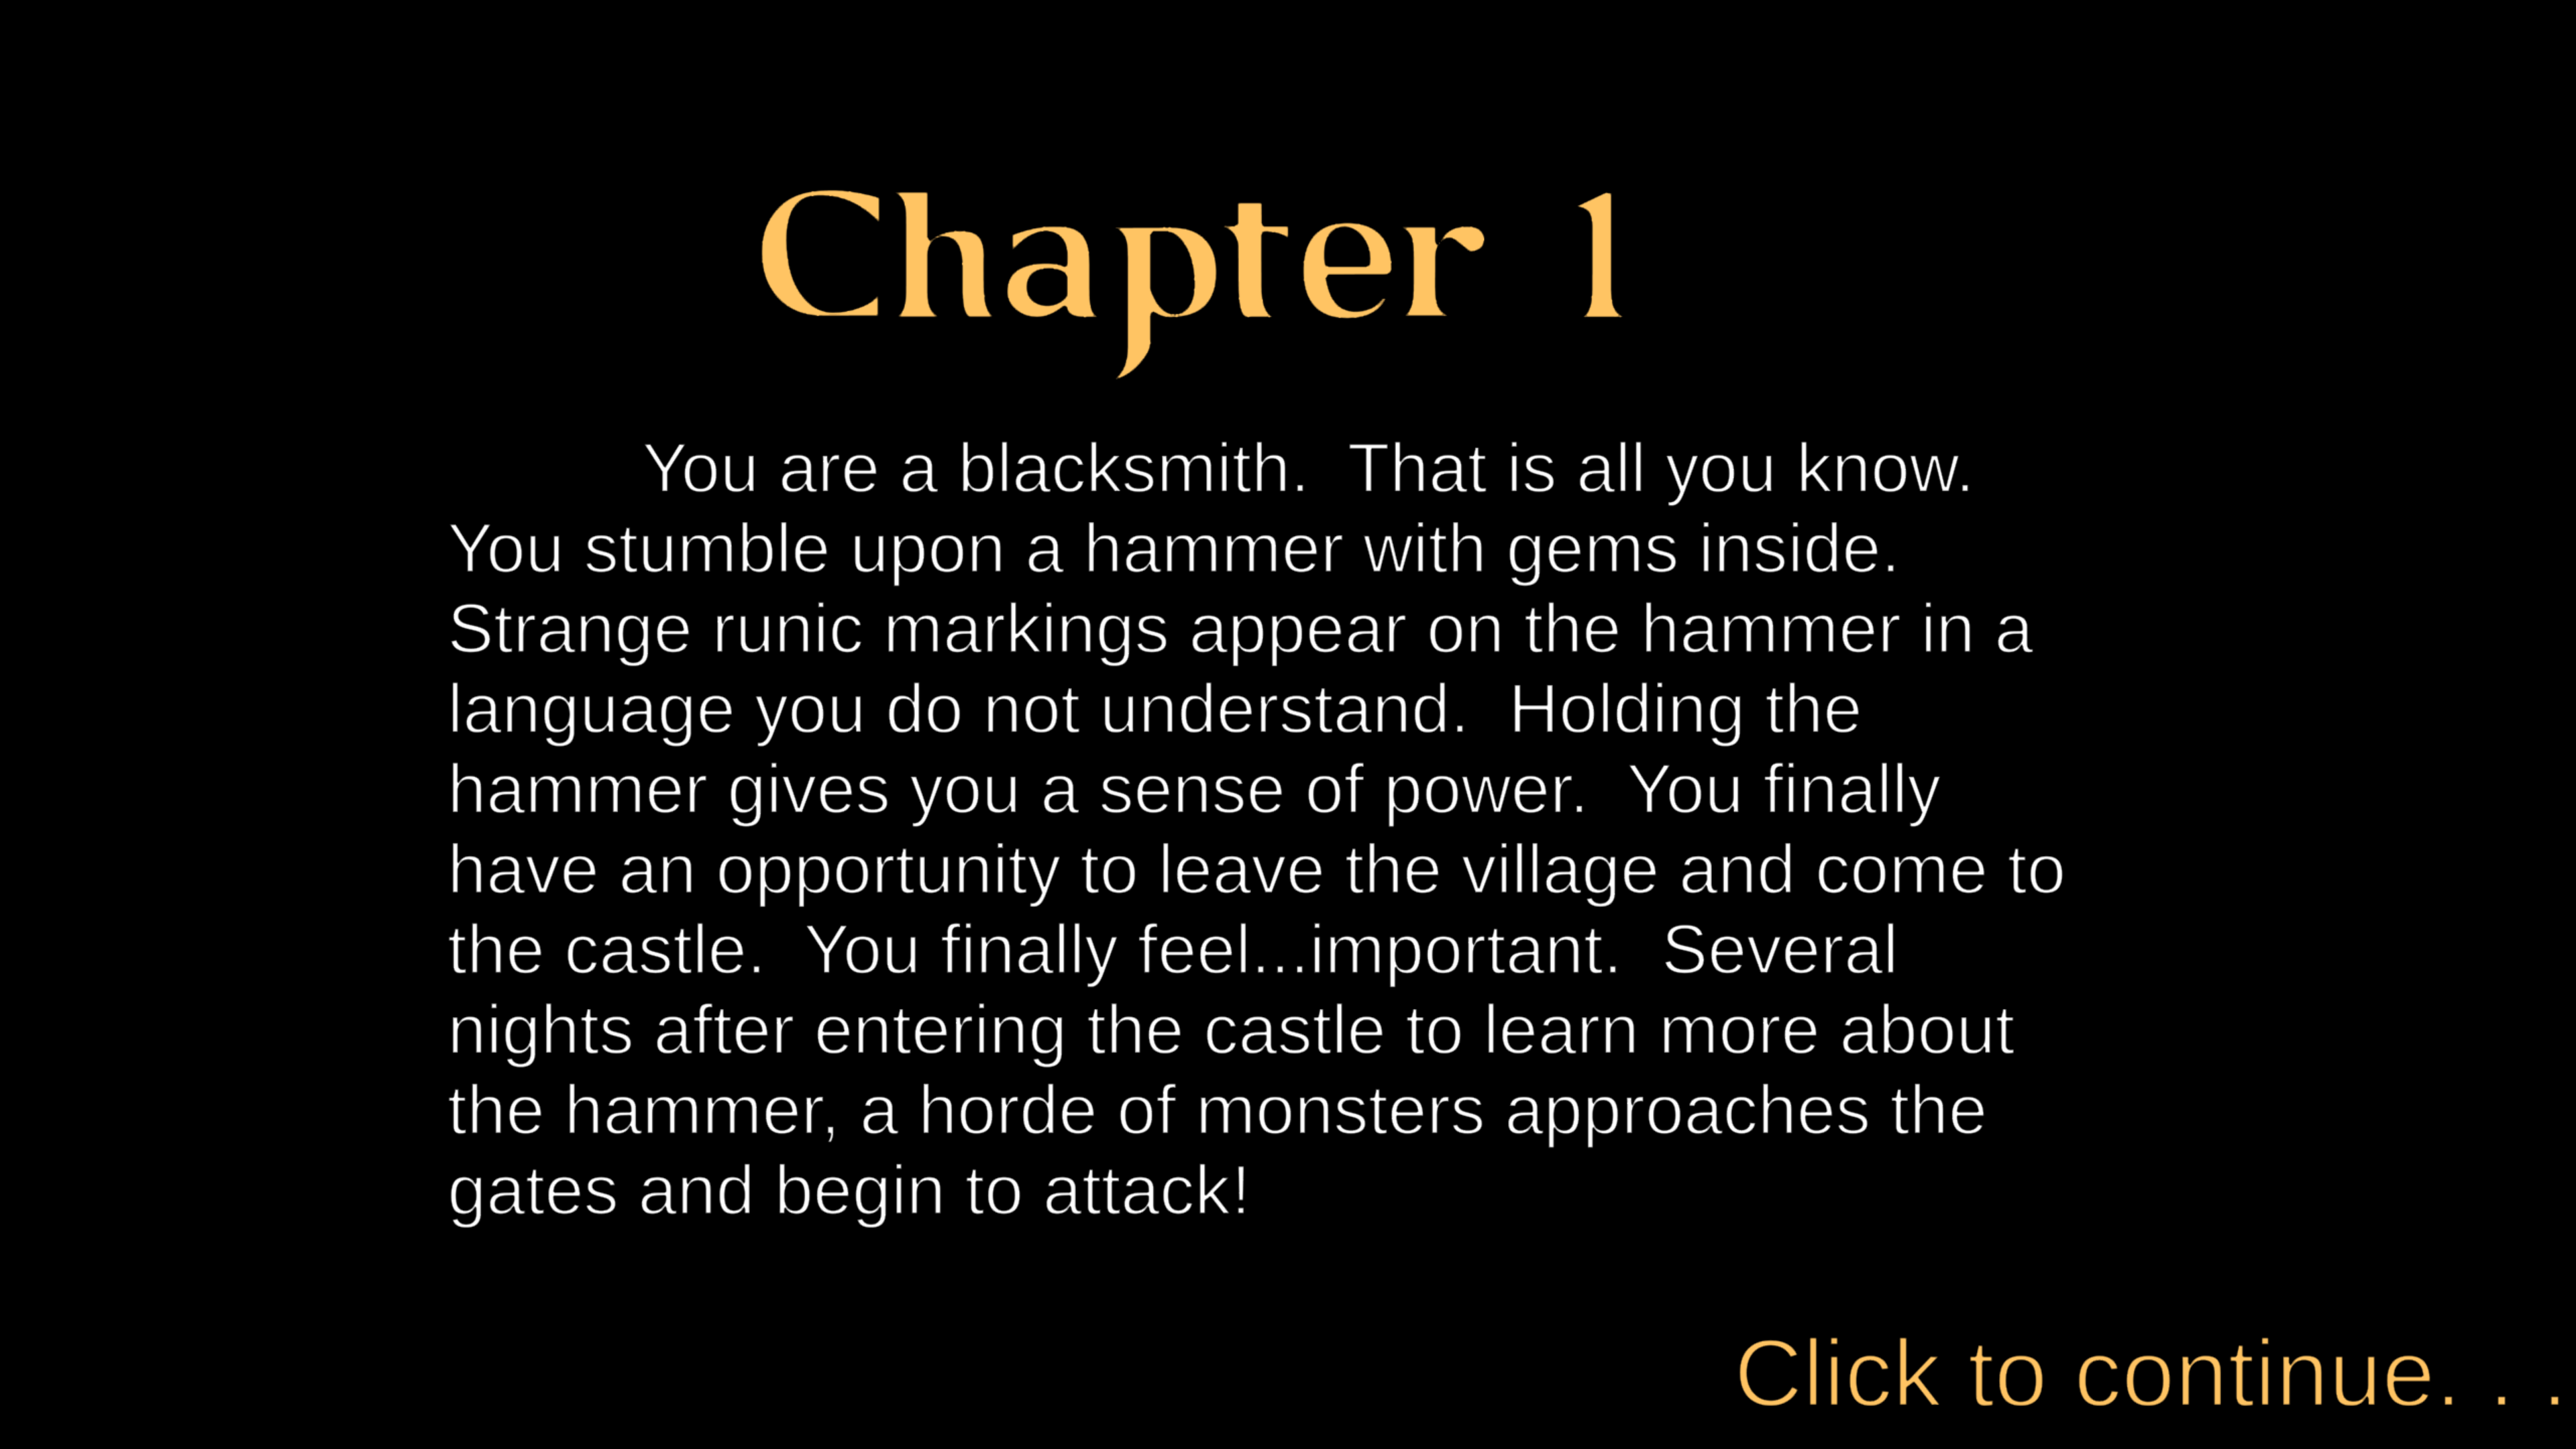 Chapter1StoryText